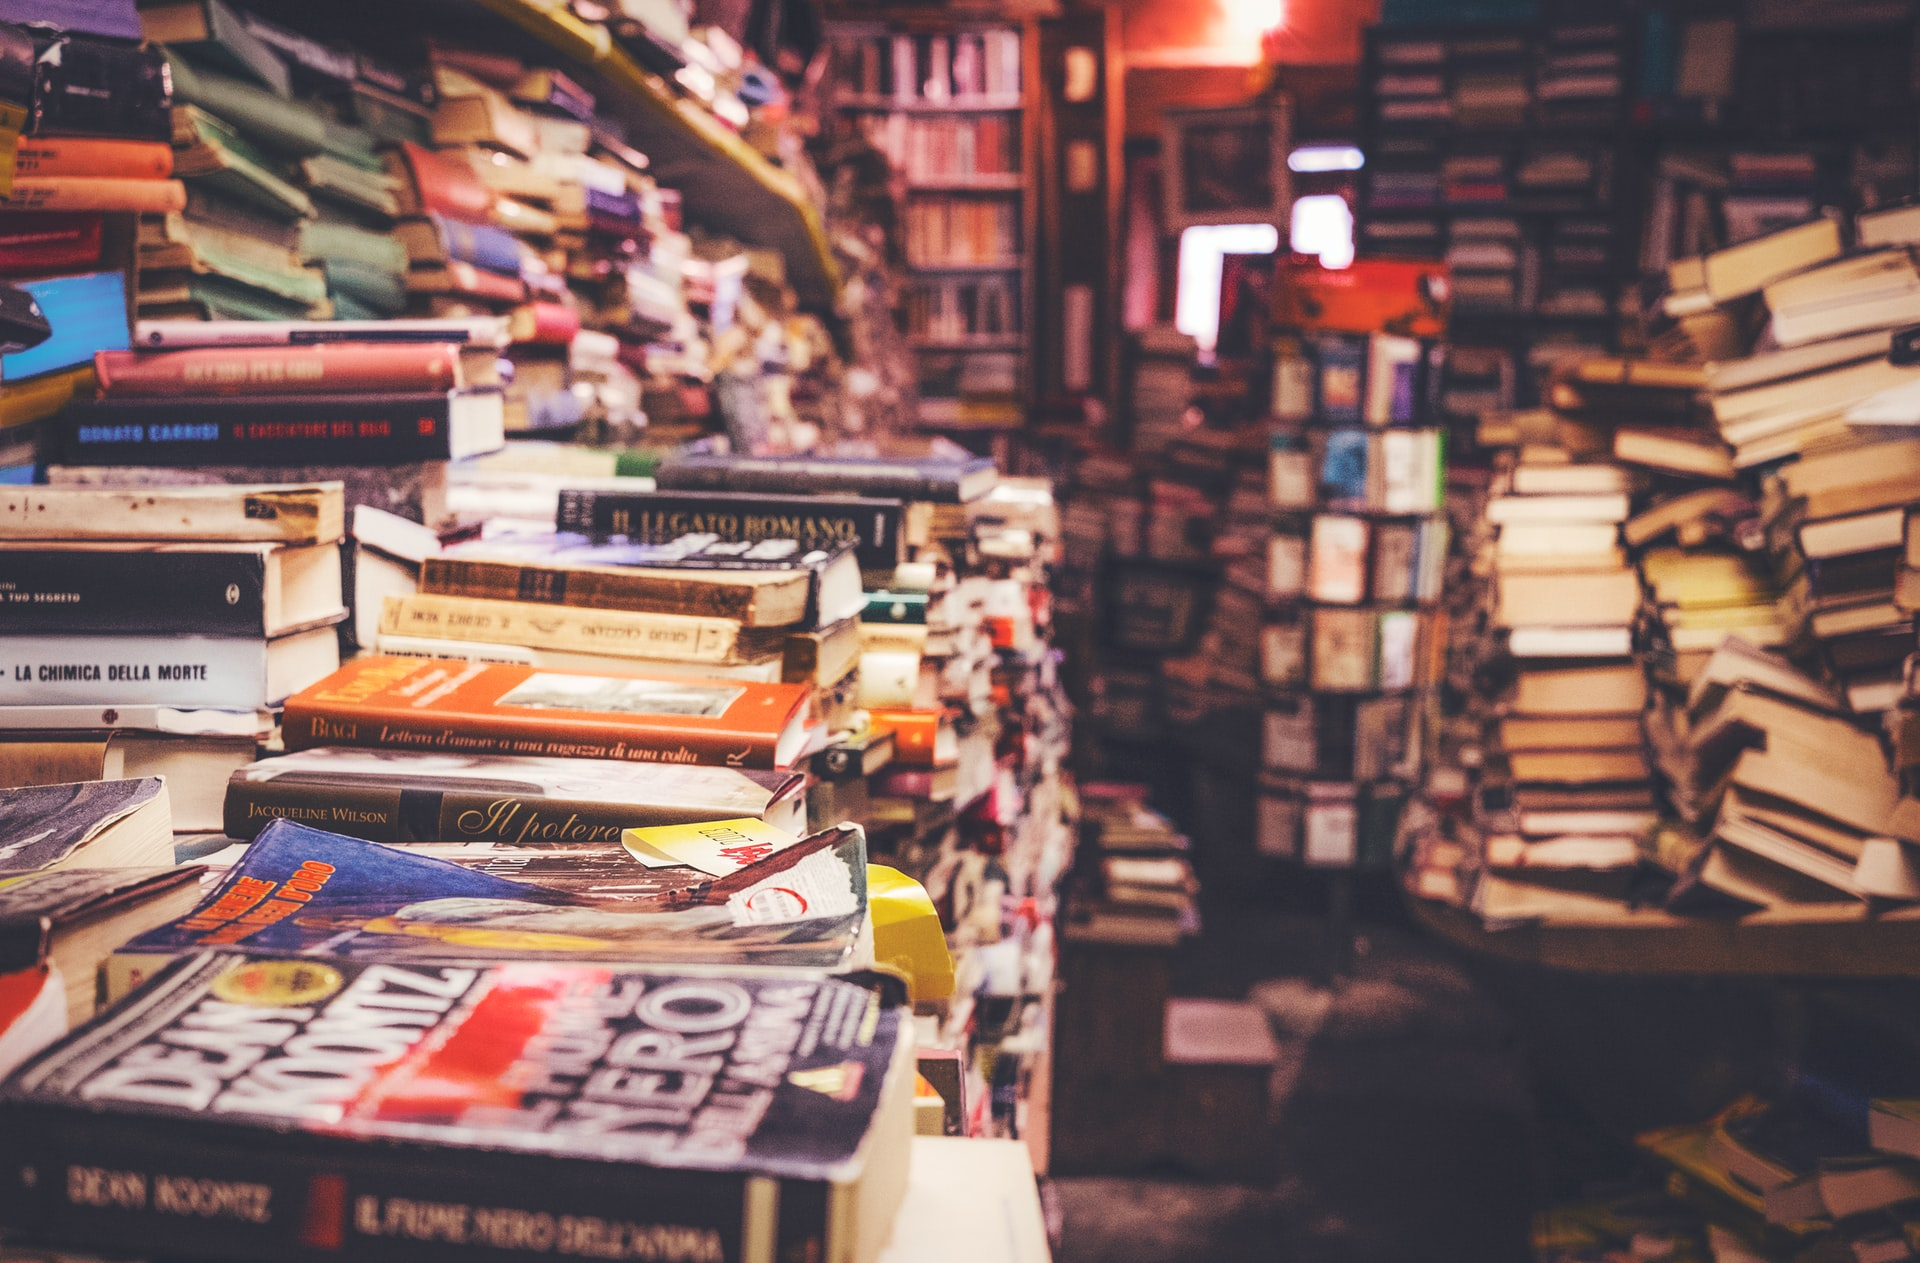 Image of stacks of books. Photo by Cristina Gottardi on Unsplash